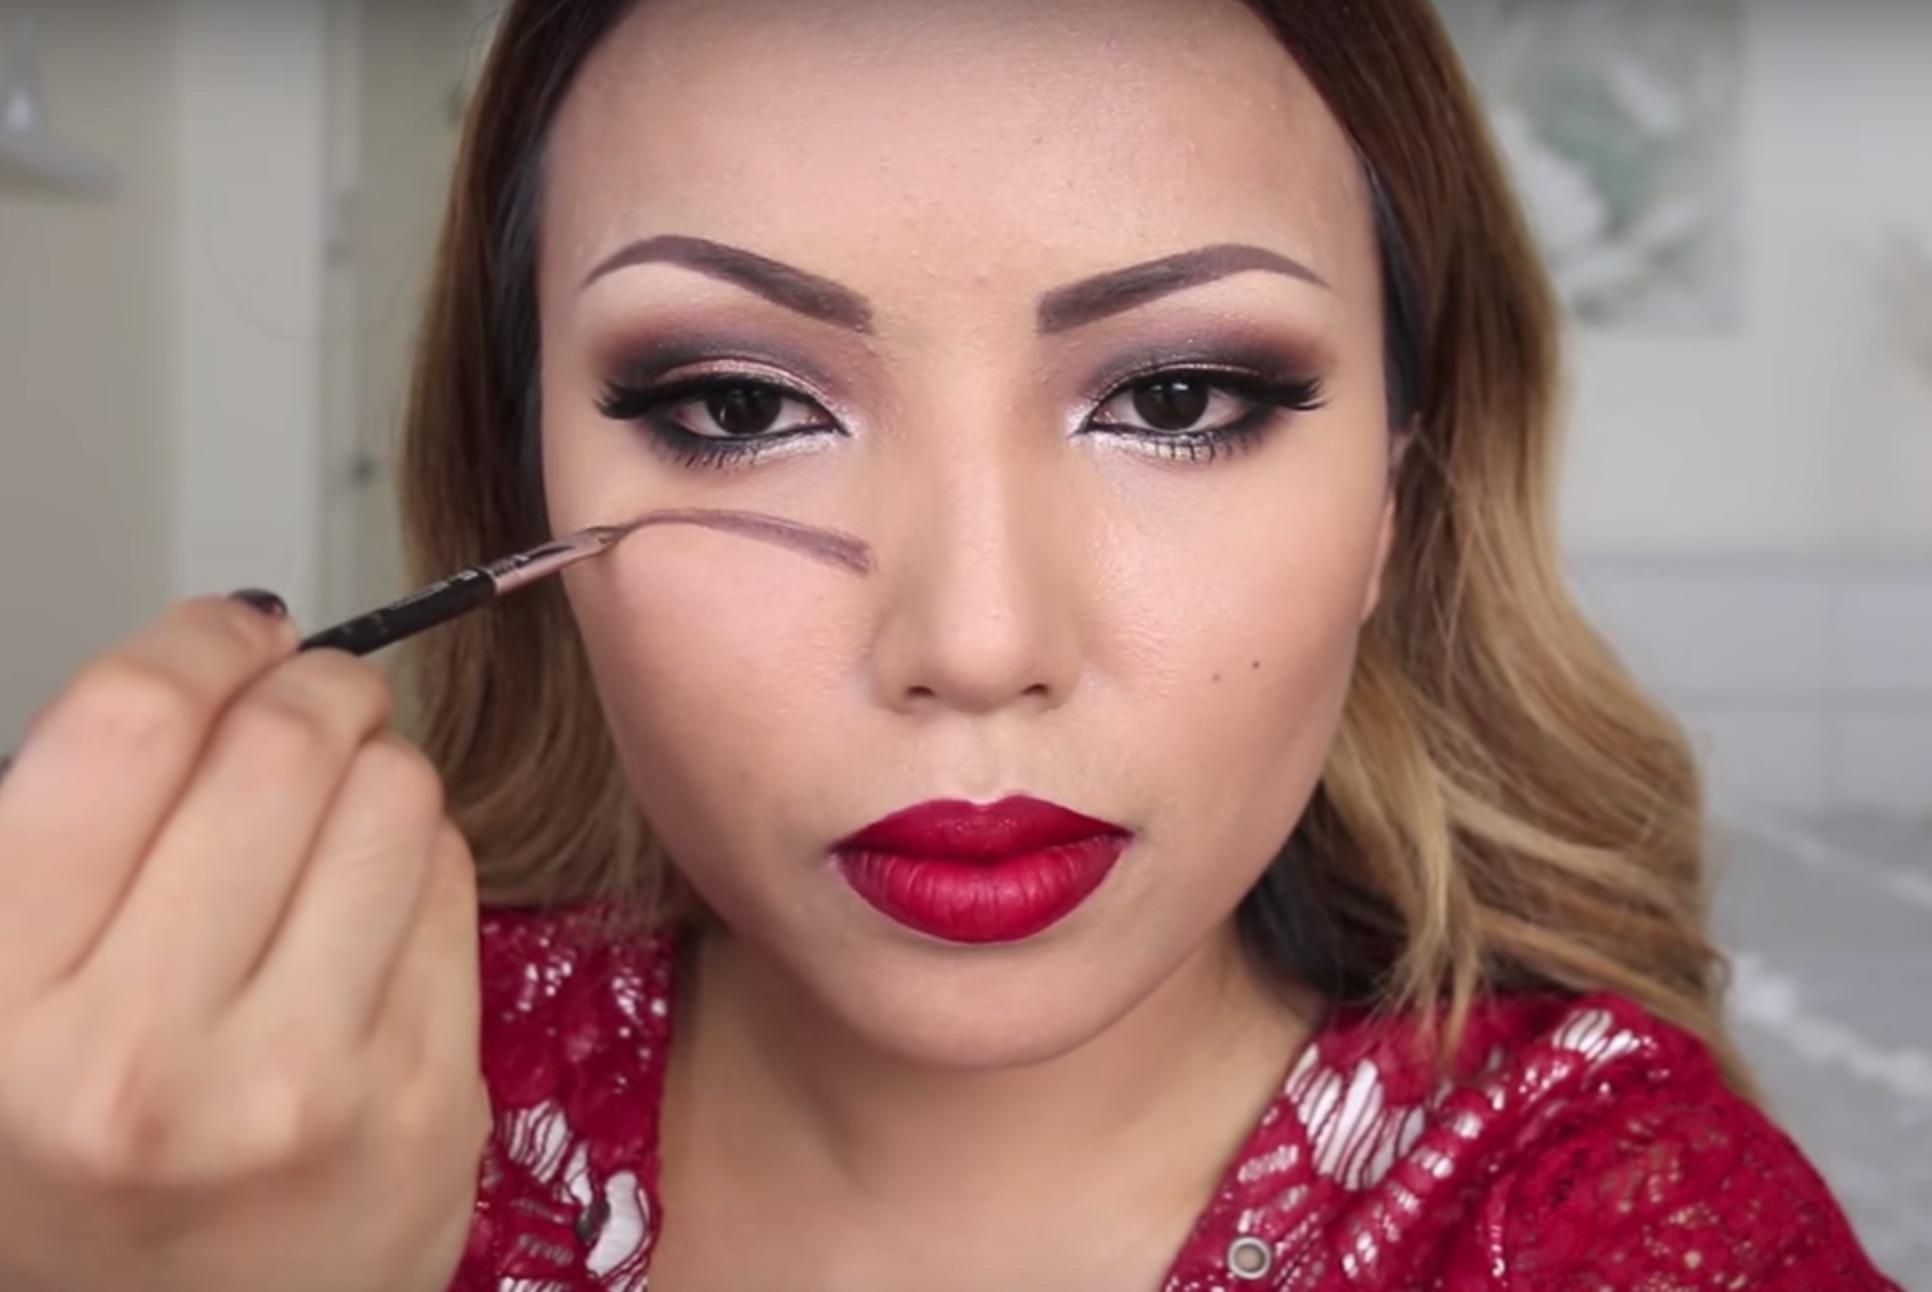 This viral Halloween makeup tutorial might actually give you nightmares